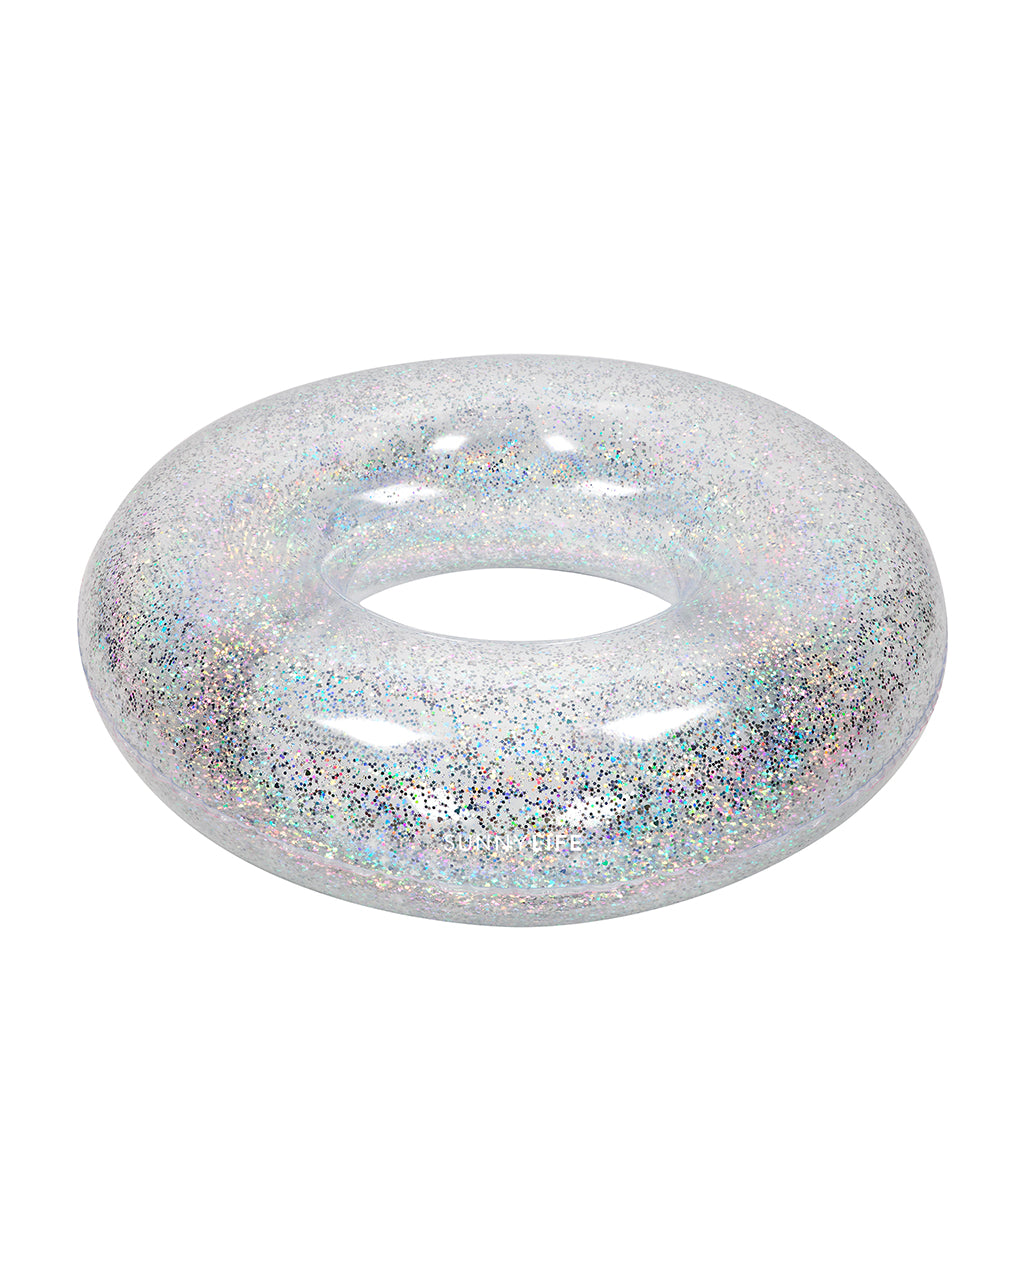 Silver glitter holographic inflatable pool ring